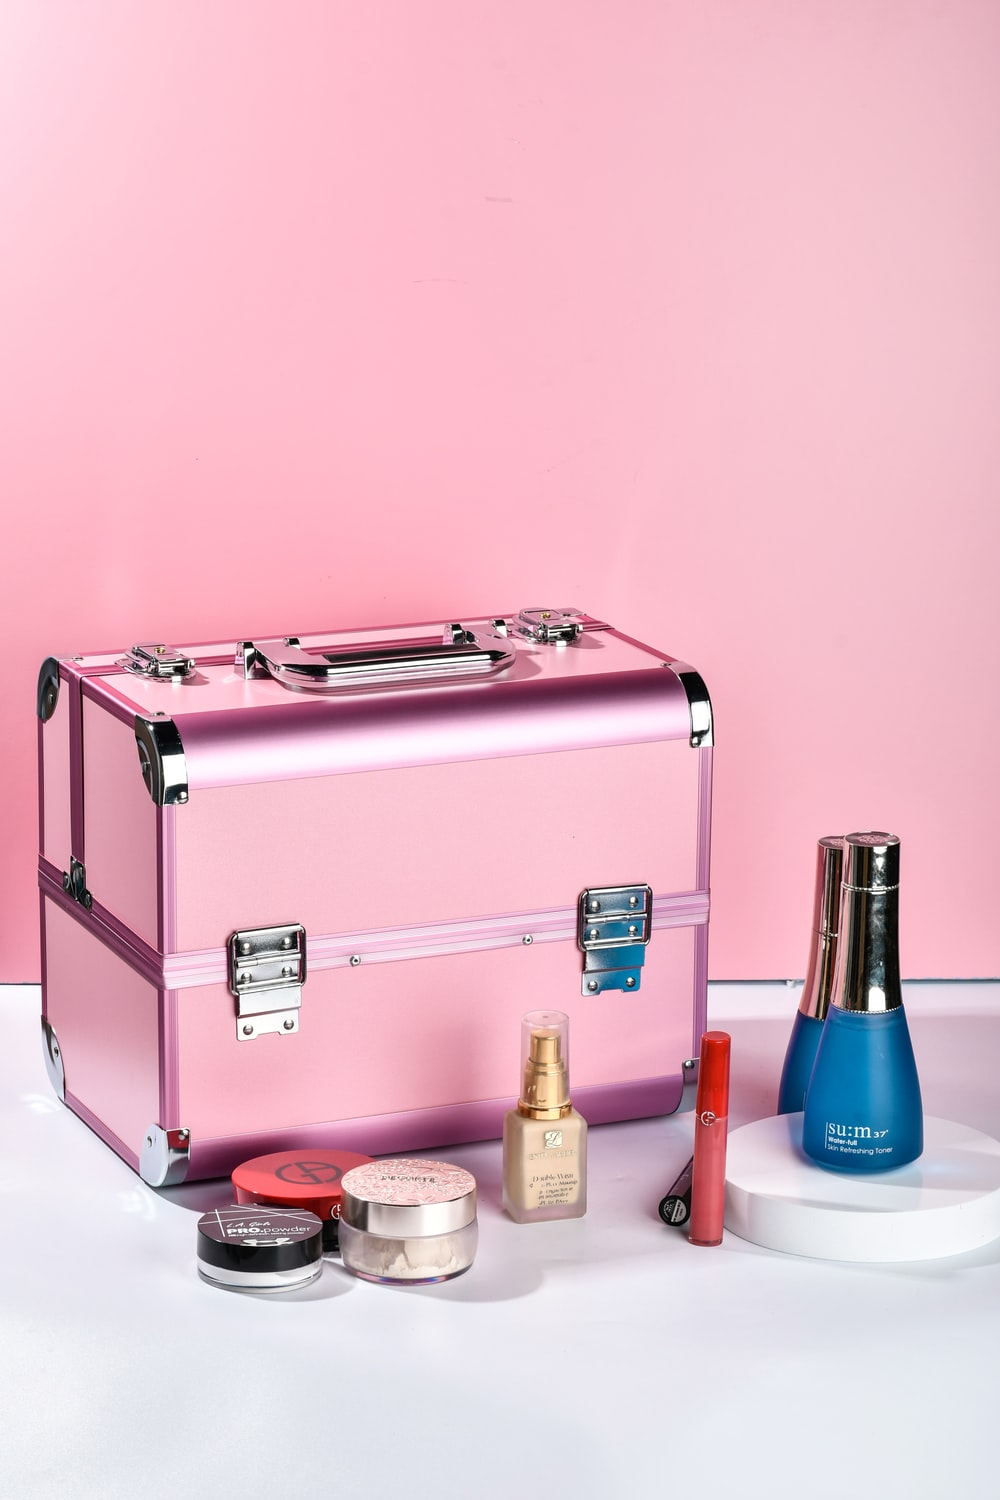 pink and silver 2 slice toaster